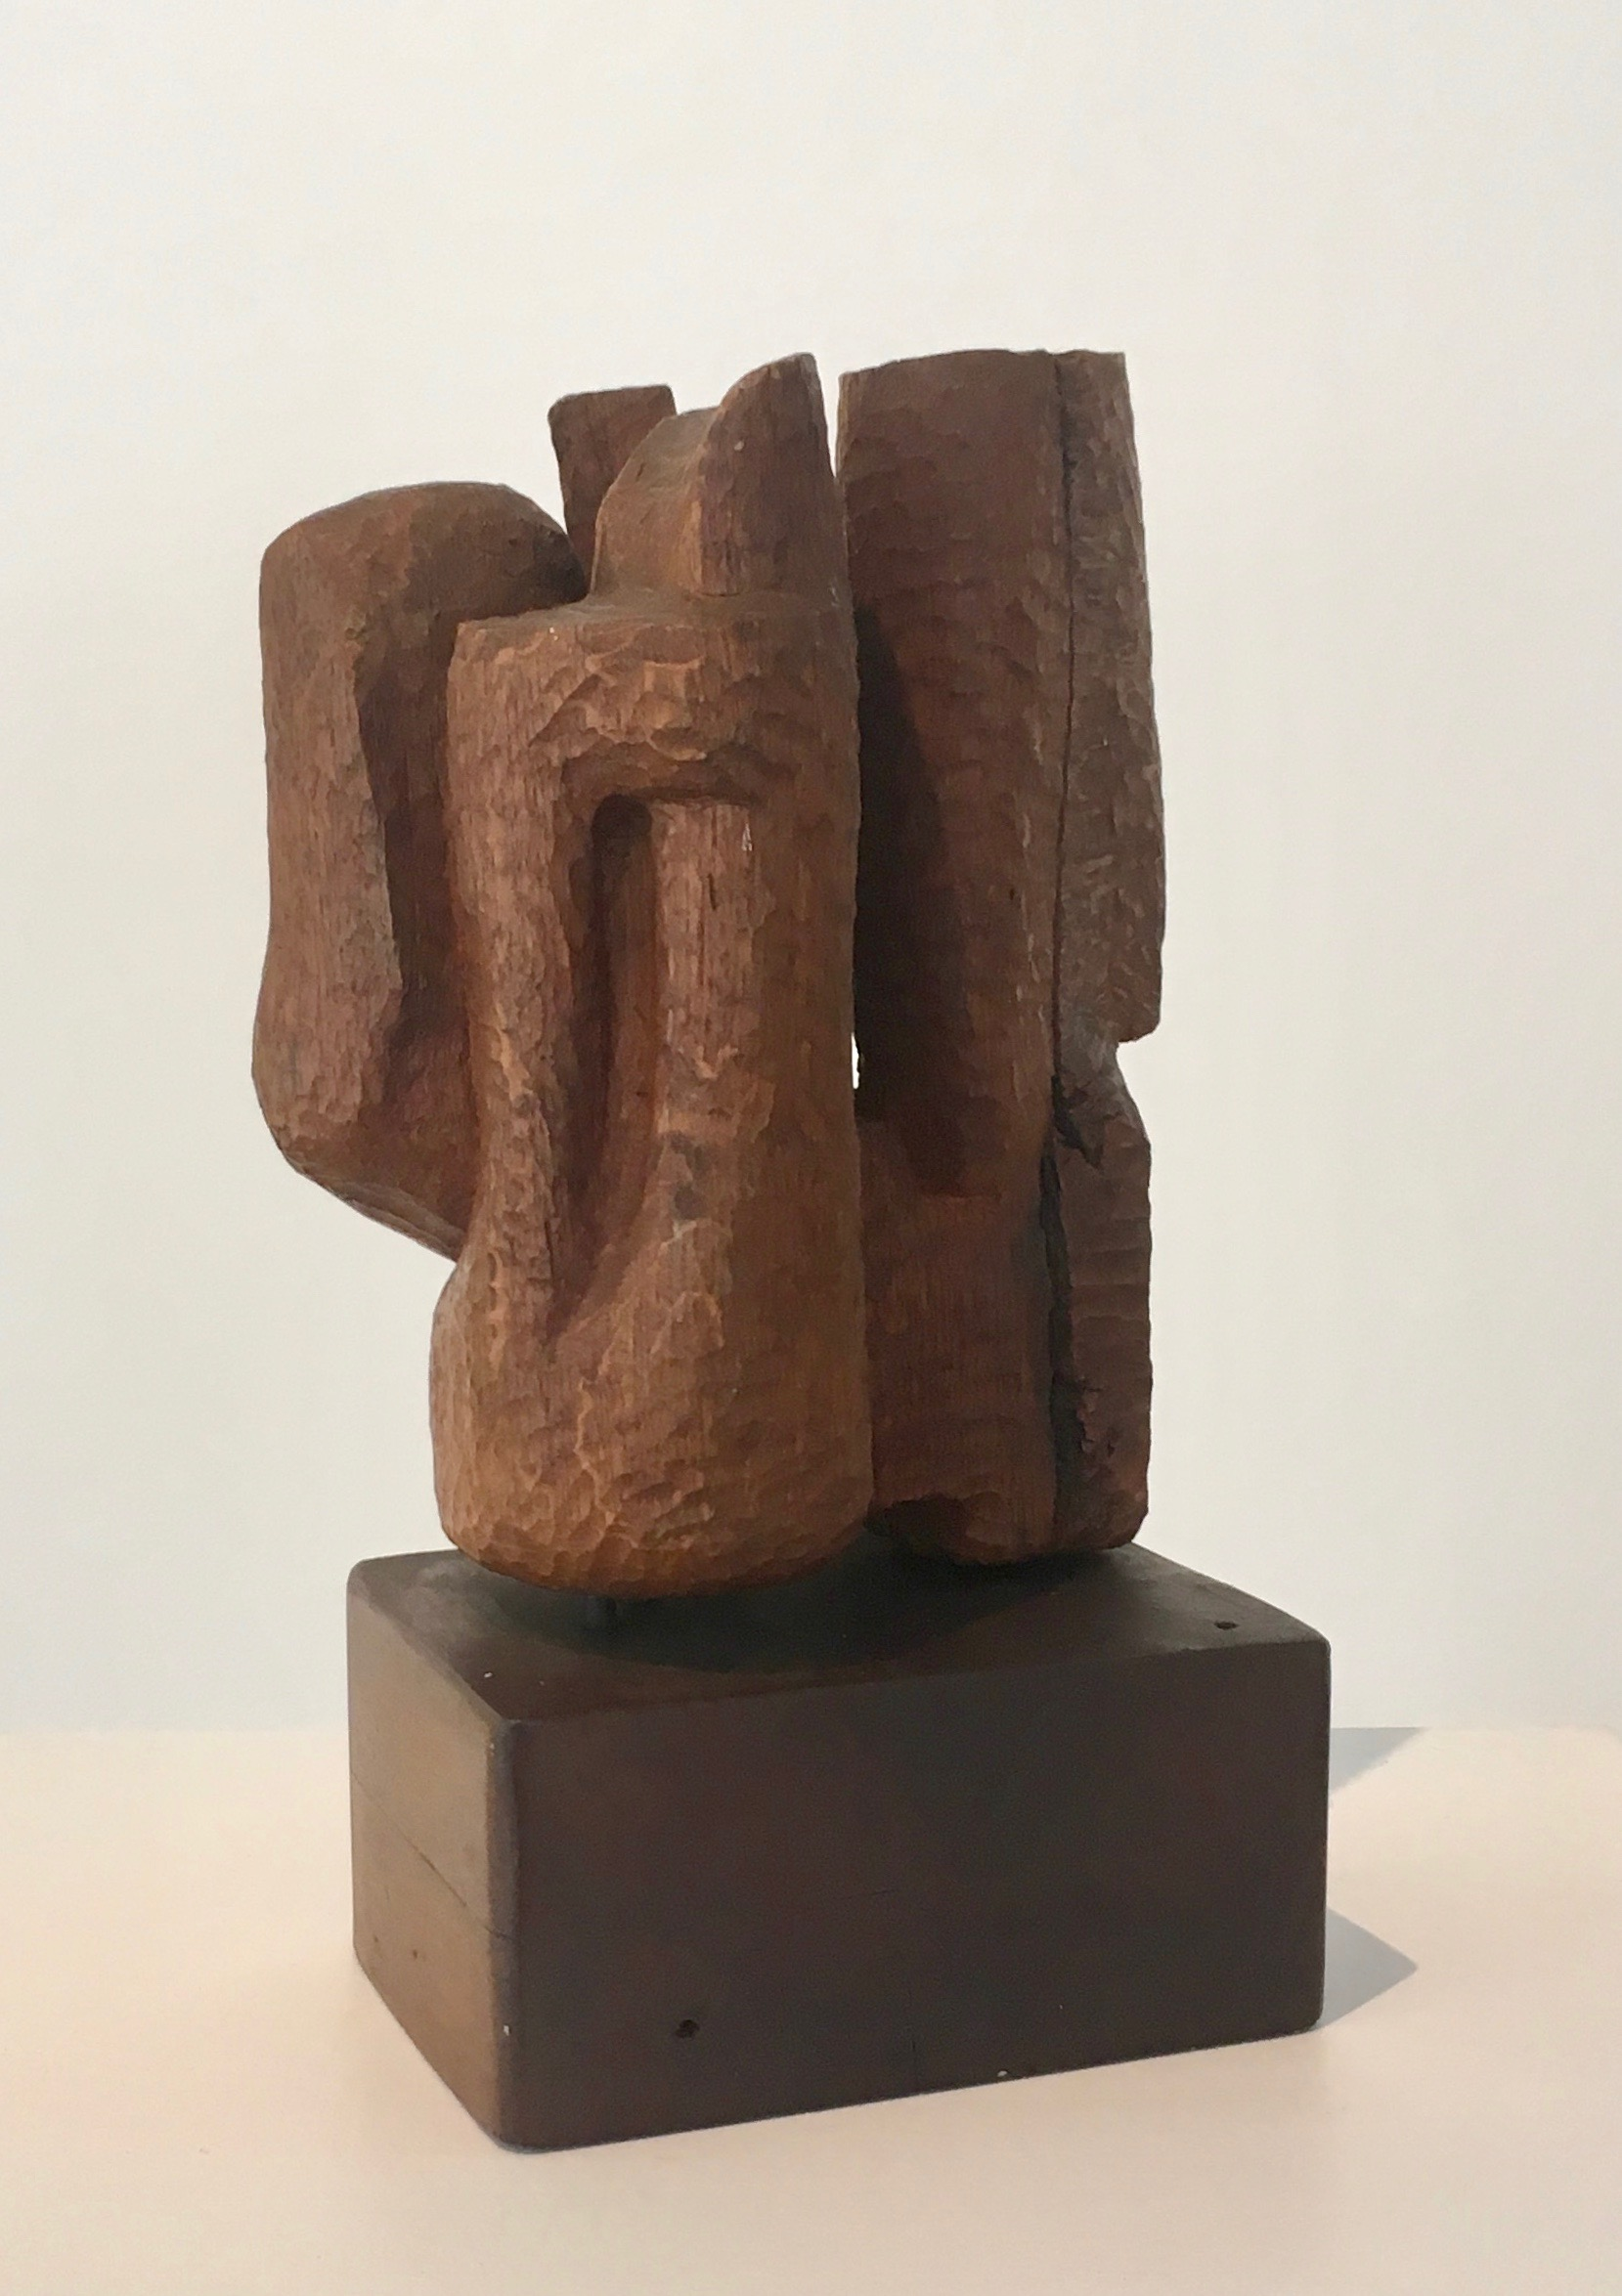 Untitled , 1956 Wood 13 x 6.5 x 5.5 inches